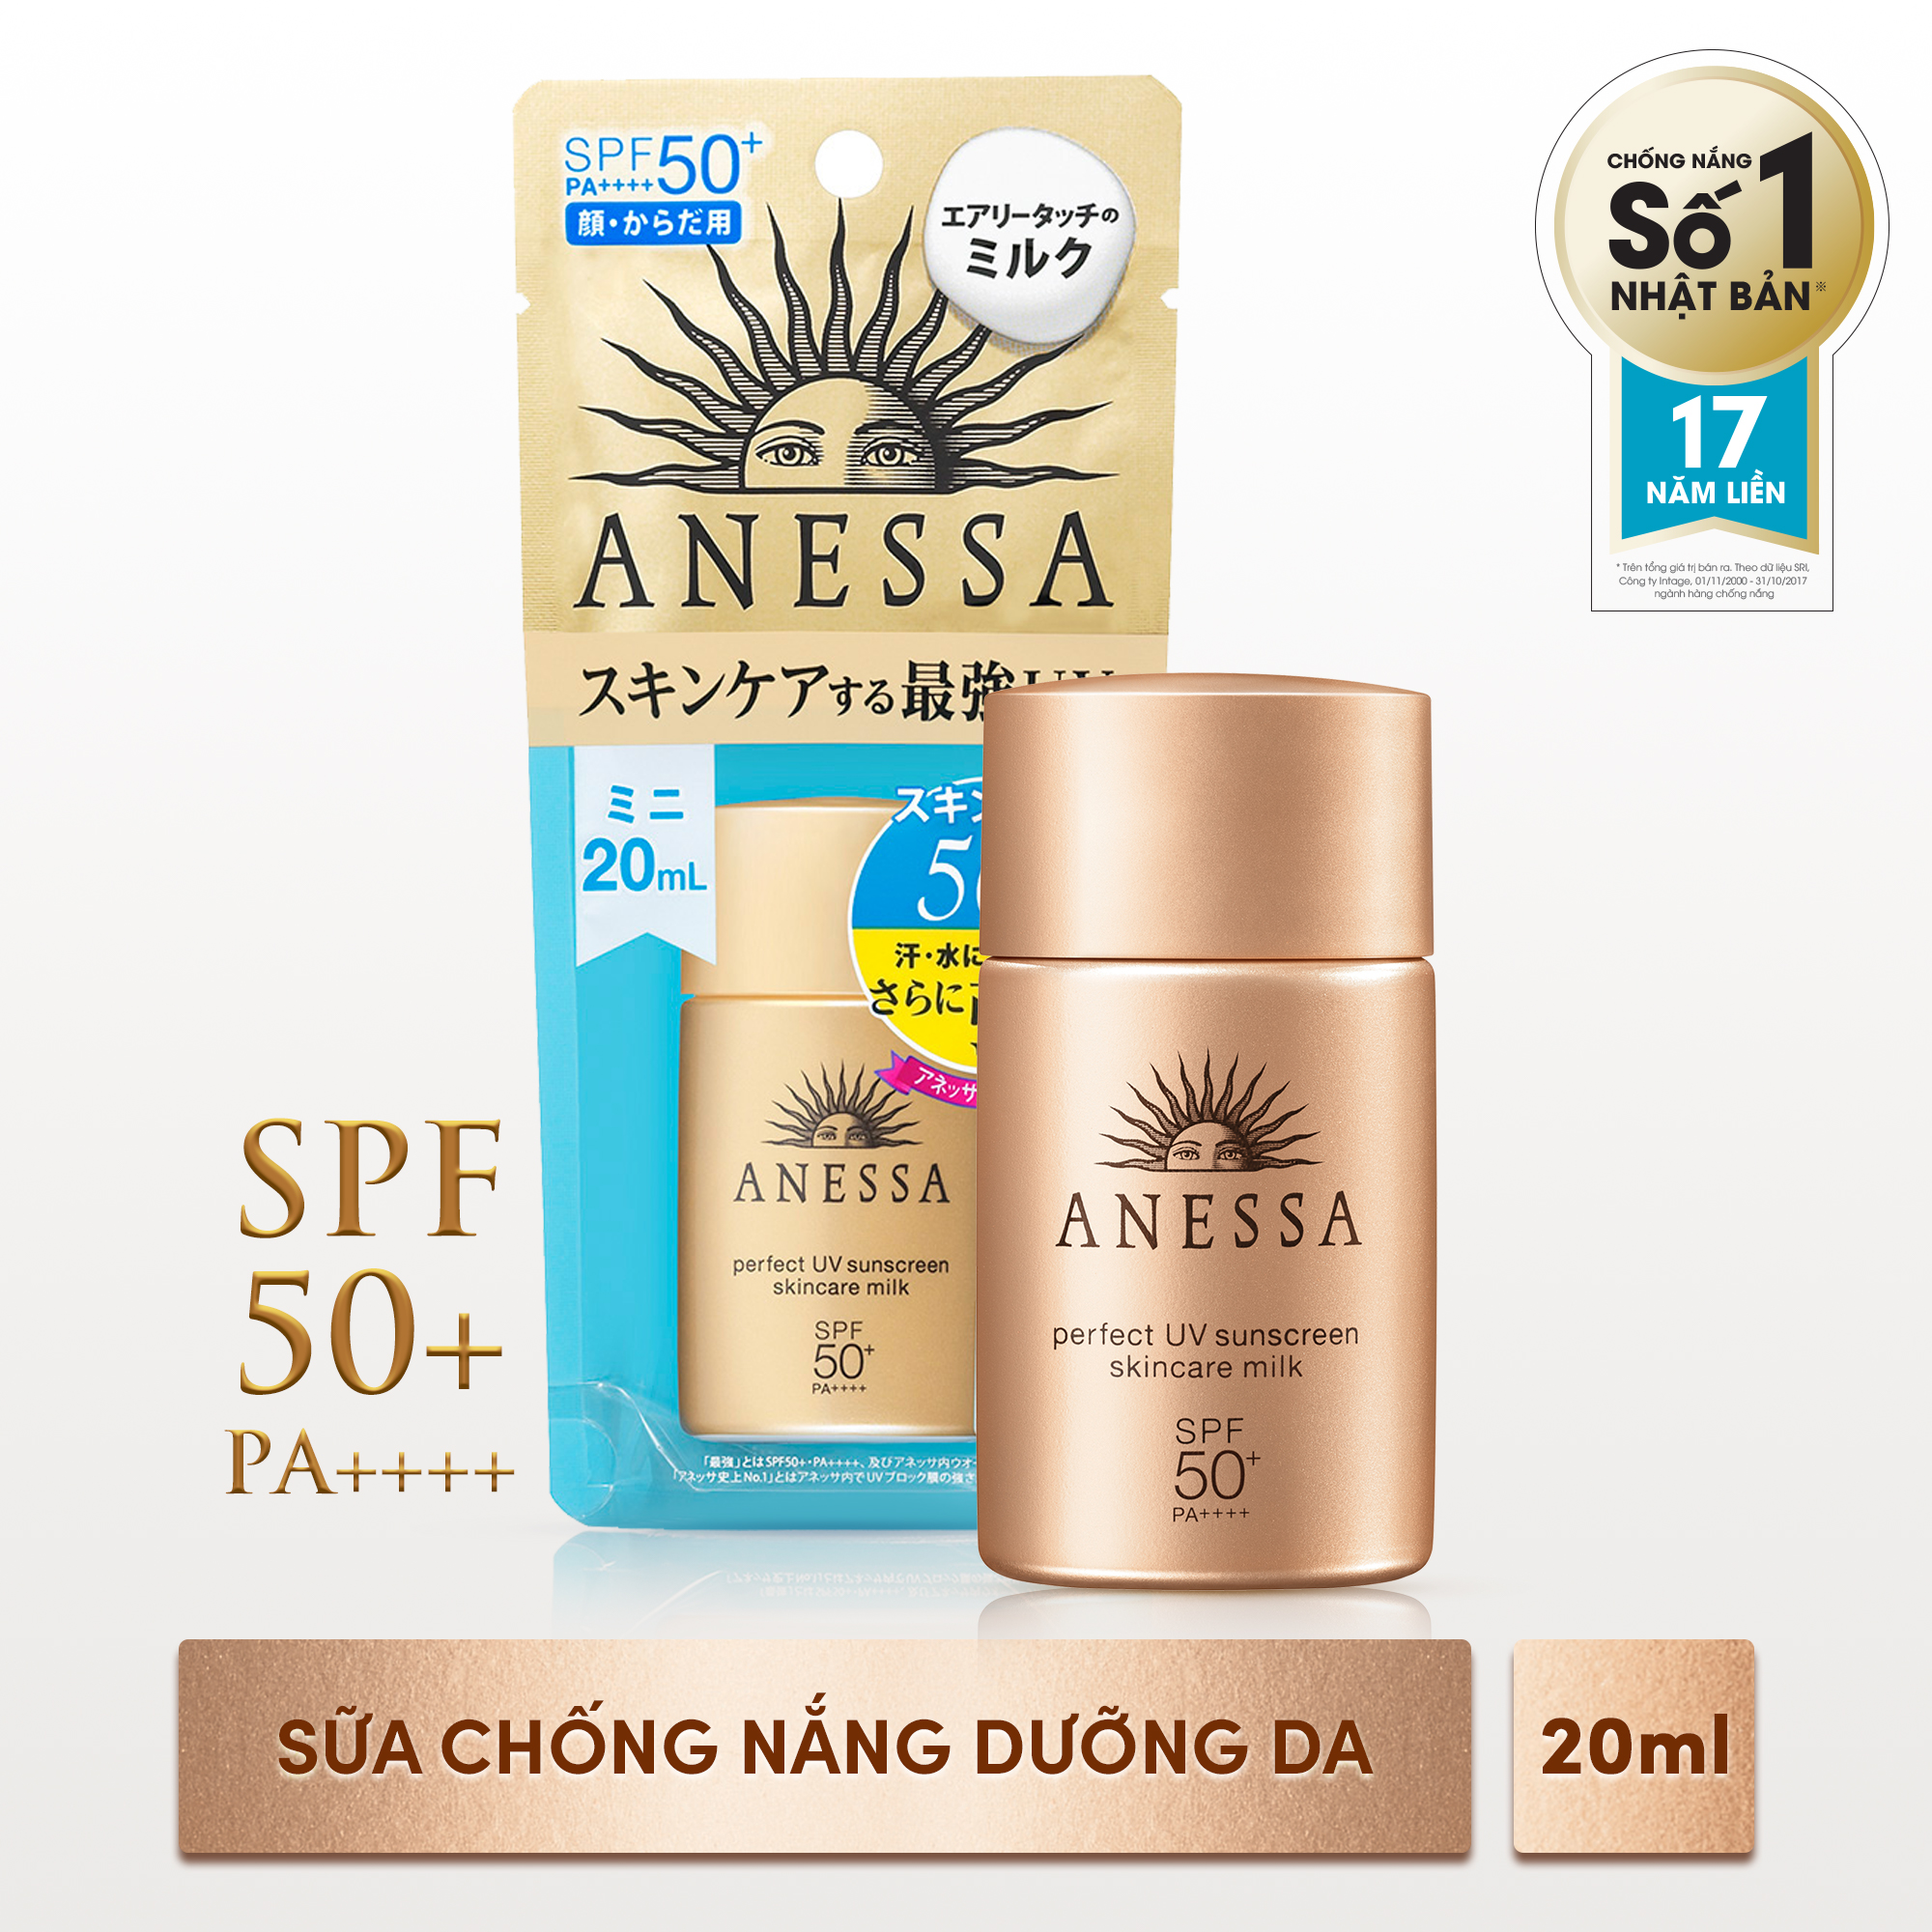 KCN Anessa Perfect UV Sunscreen Mild Milk 20ml Dịu Nhẹ